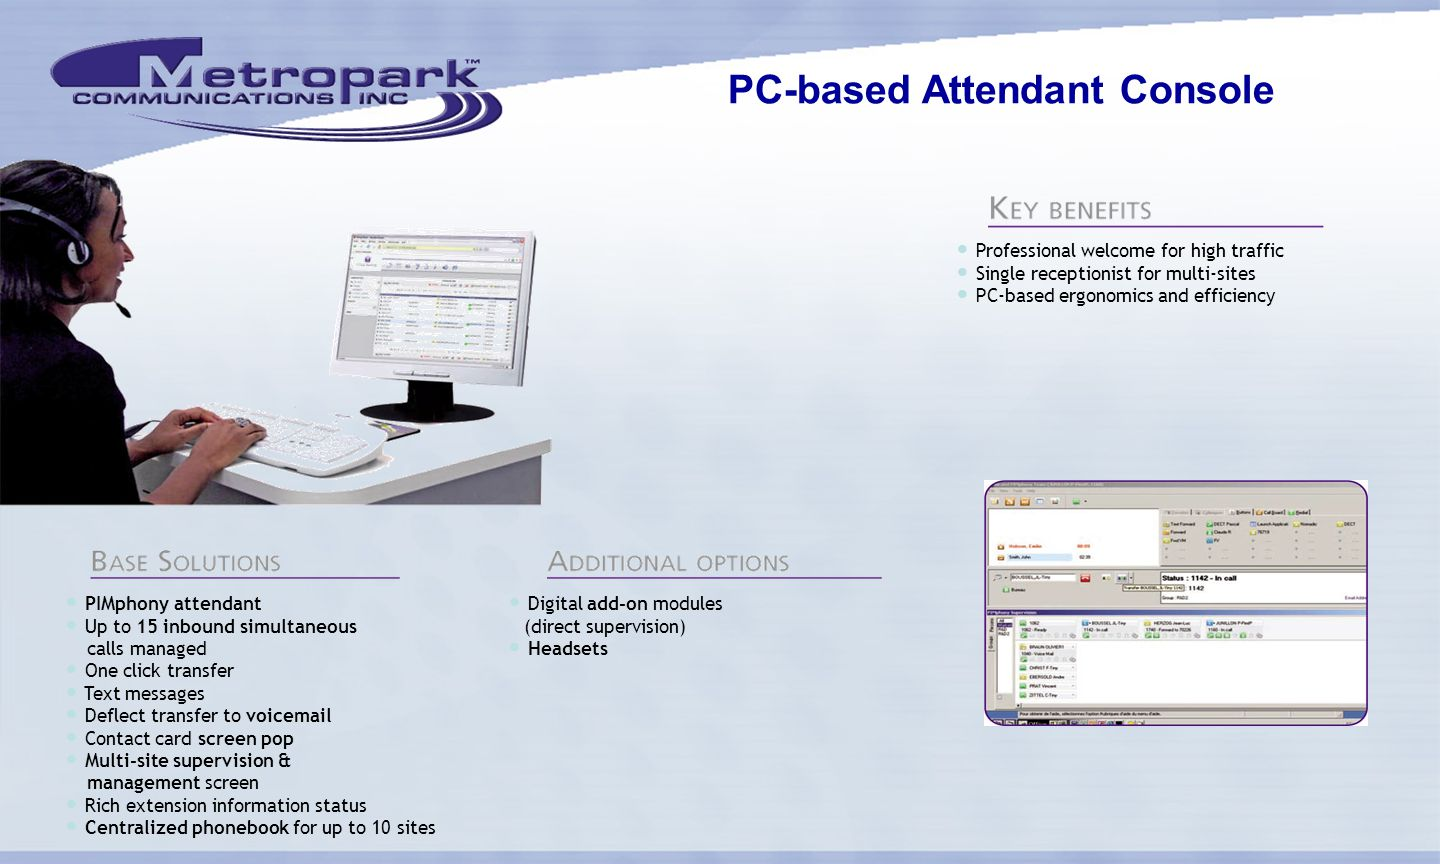 PC-based Attendant Console PIMphony attendant Up to 15 inbound simultaneous calls managed One click transfer Text messages Deflect transfer to voicemail Contact card screen pop Multi-site supervision & management screen Rich extension information status Centralized phonebook for up to 10 sites Digital add-on modules (direct supervision) Headsets Professional welcome for high traffic Single receptionist for multi-sites PC-based ergonomics and efficiency